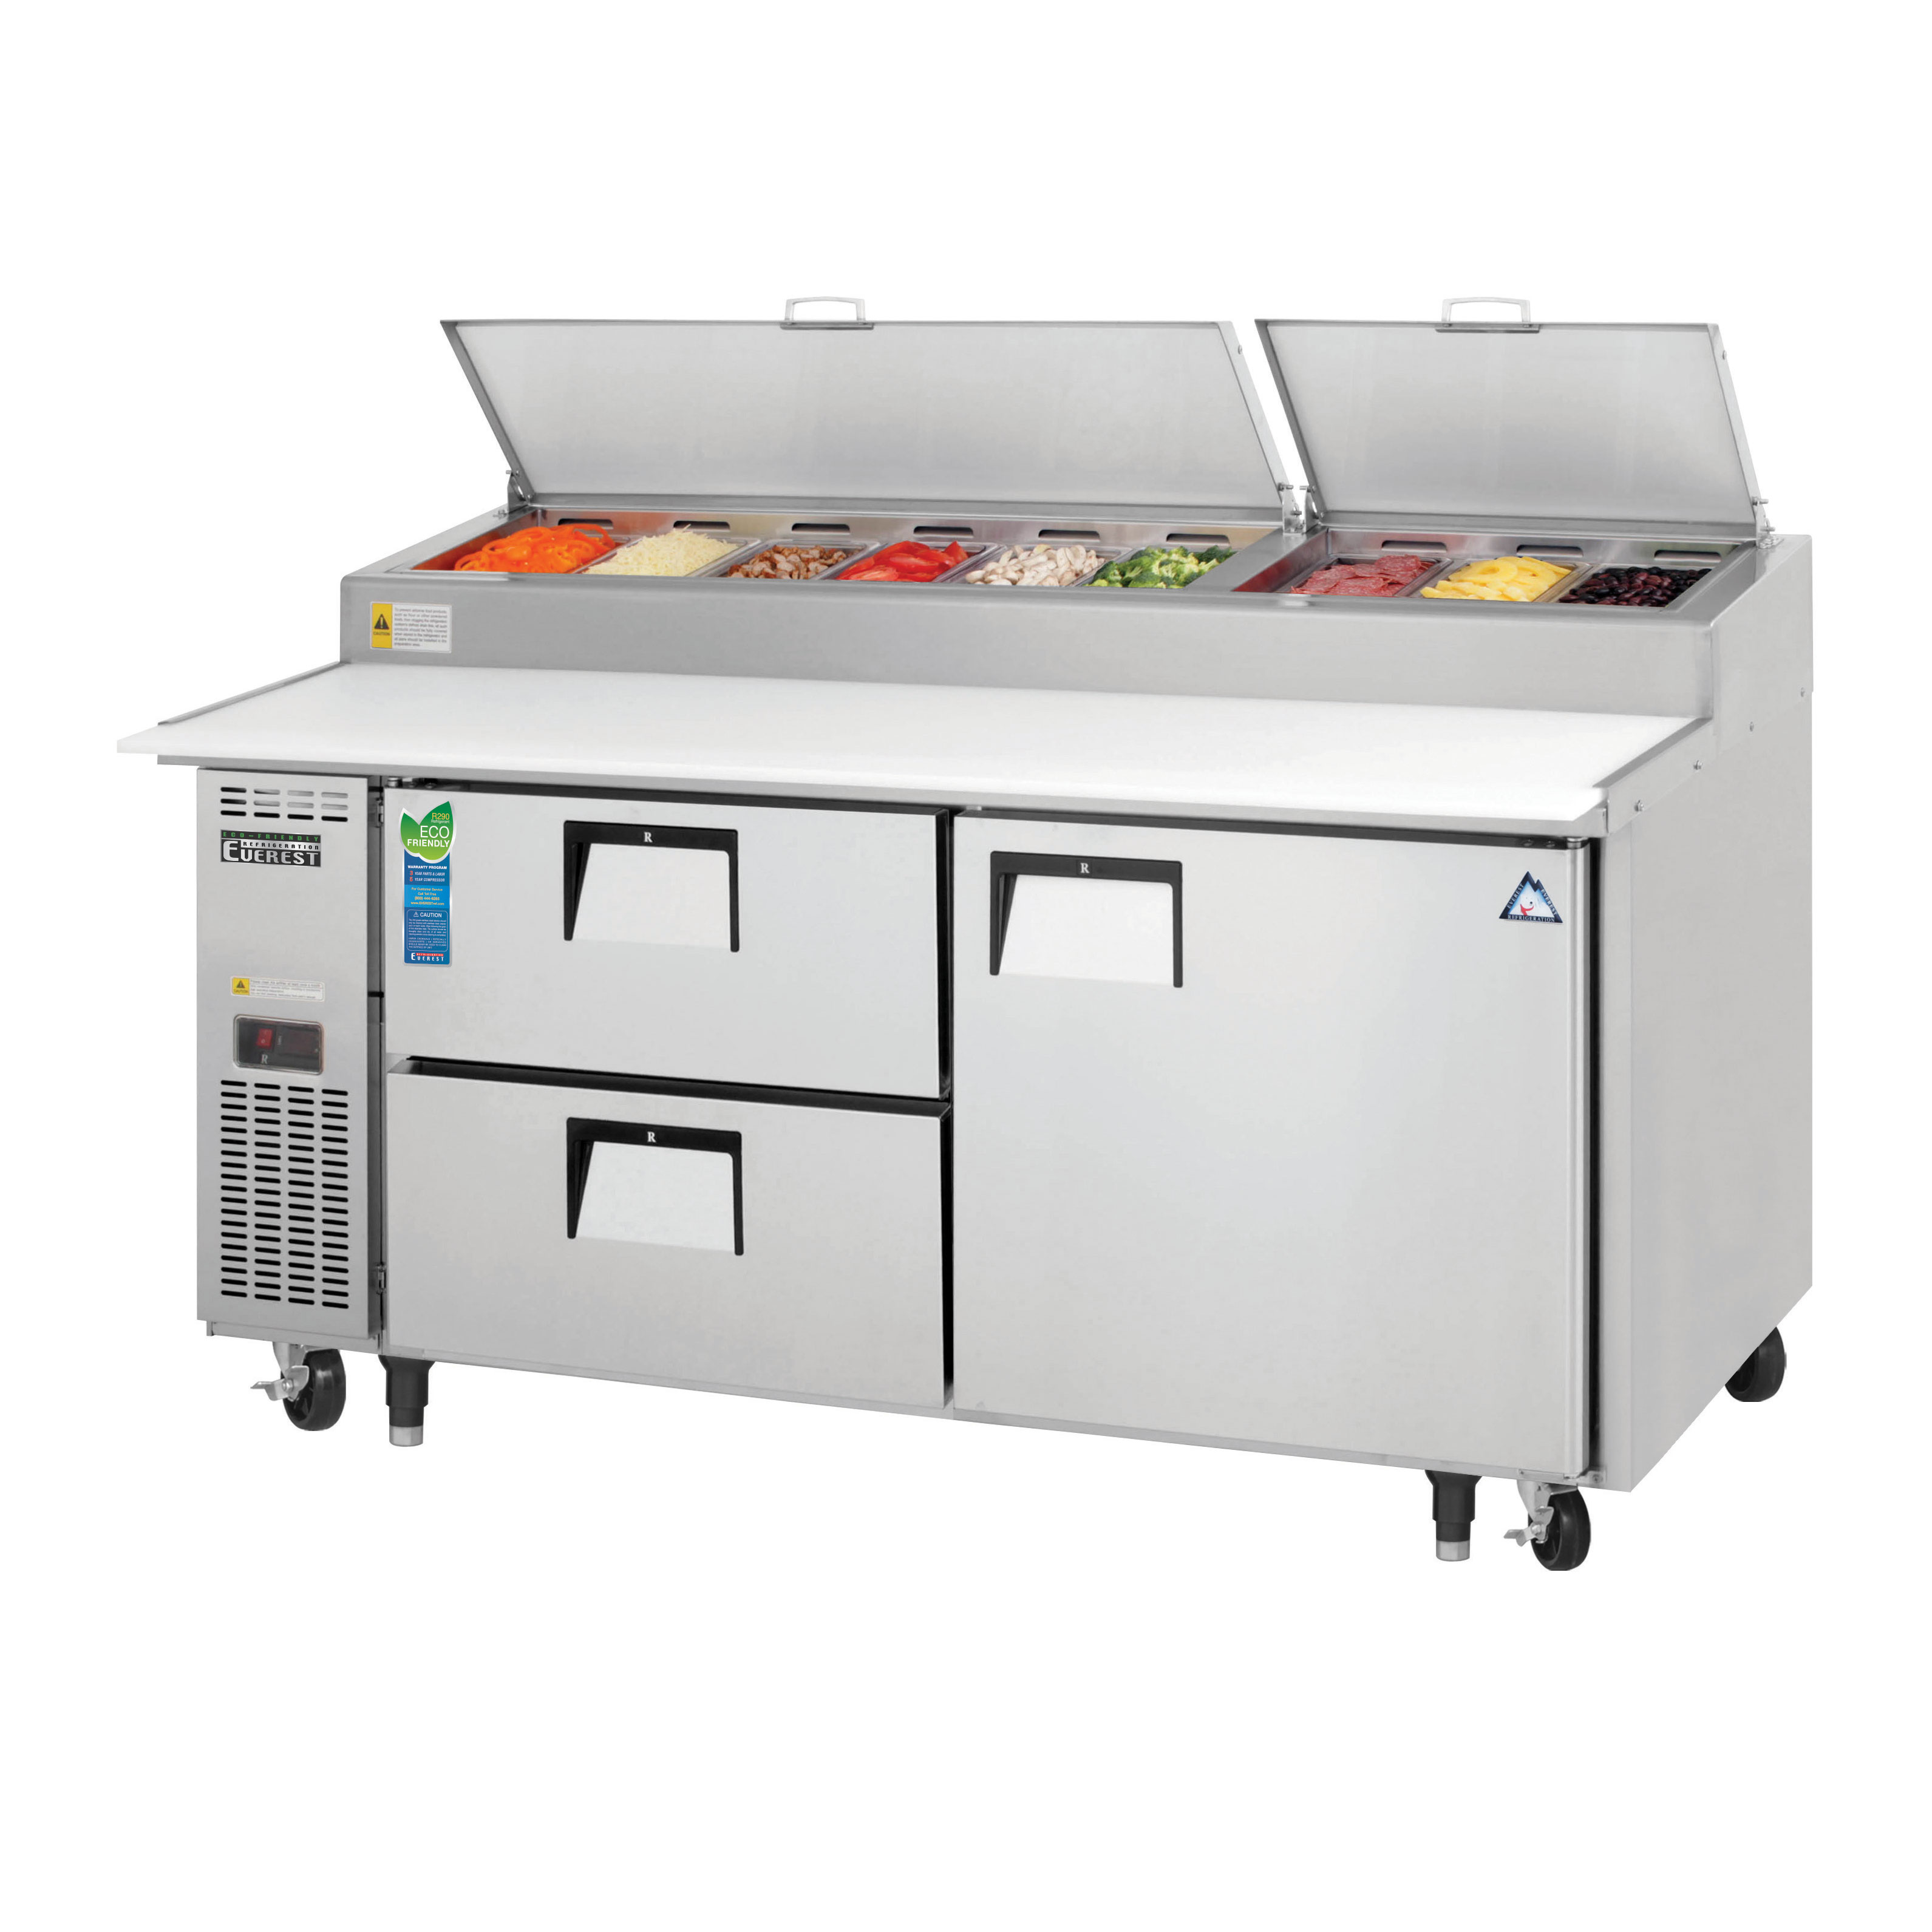 Everest Refrigeration EPPR2-D2 refrigerated counter, pizza prep table